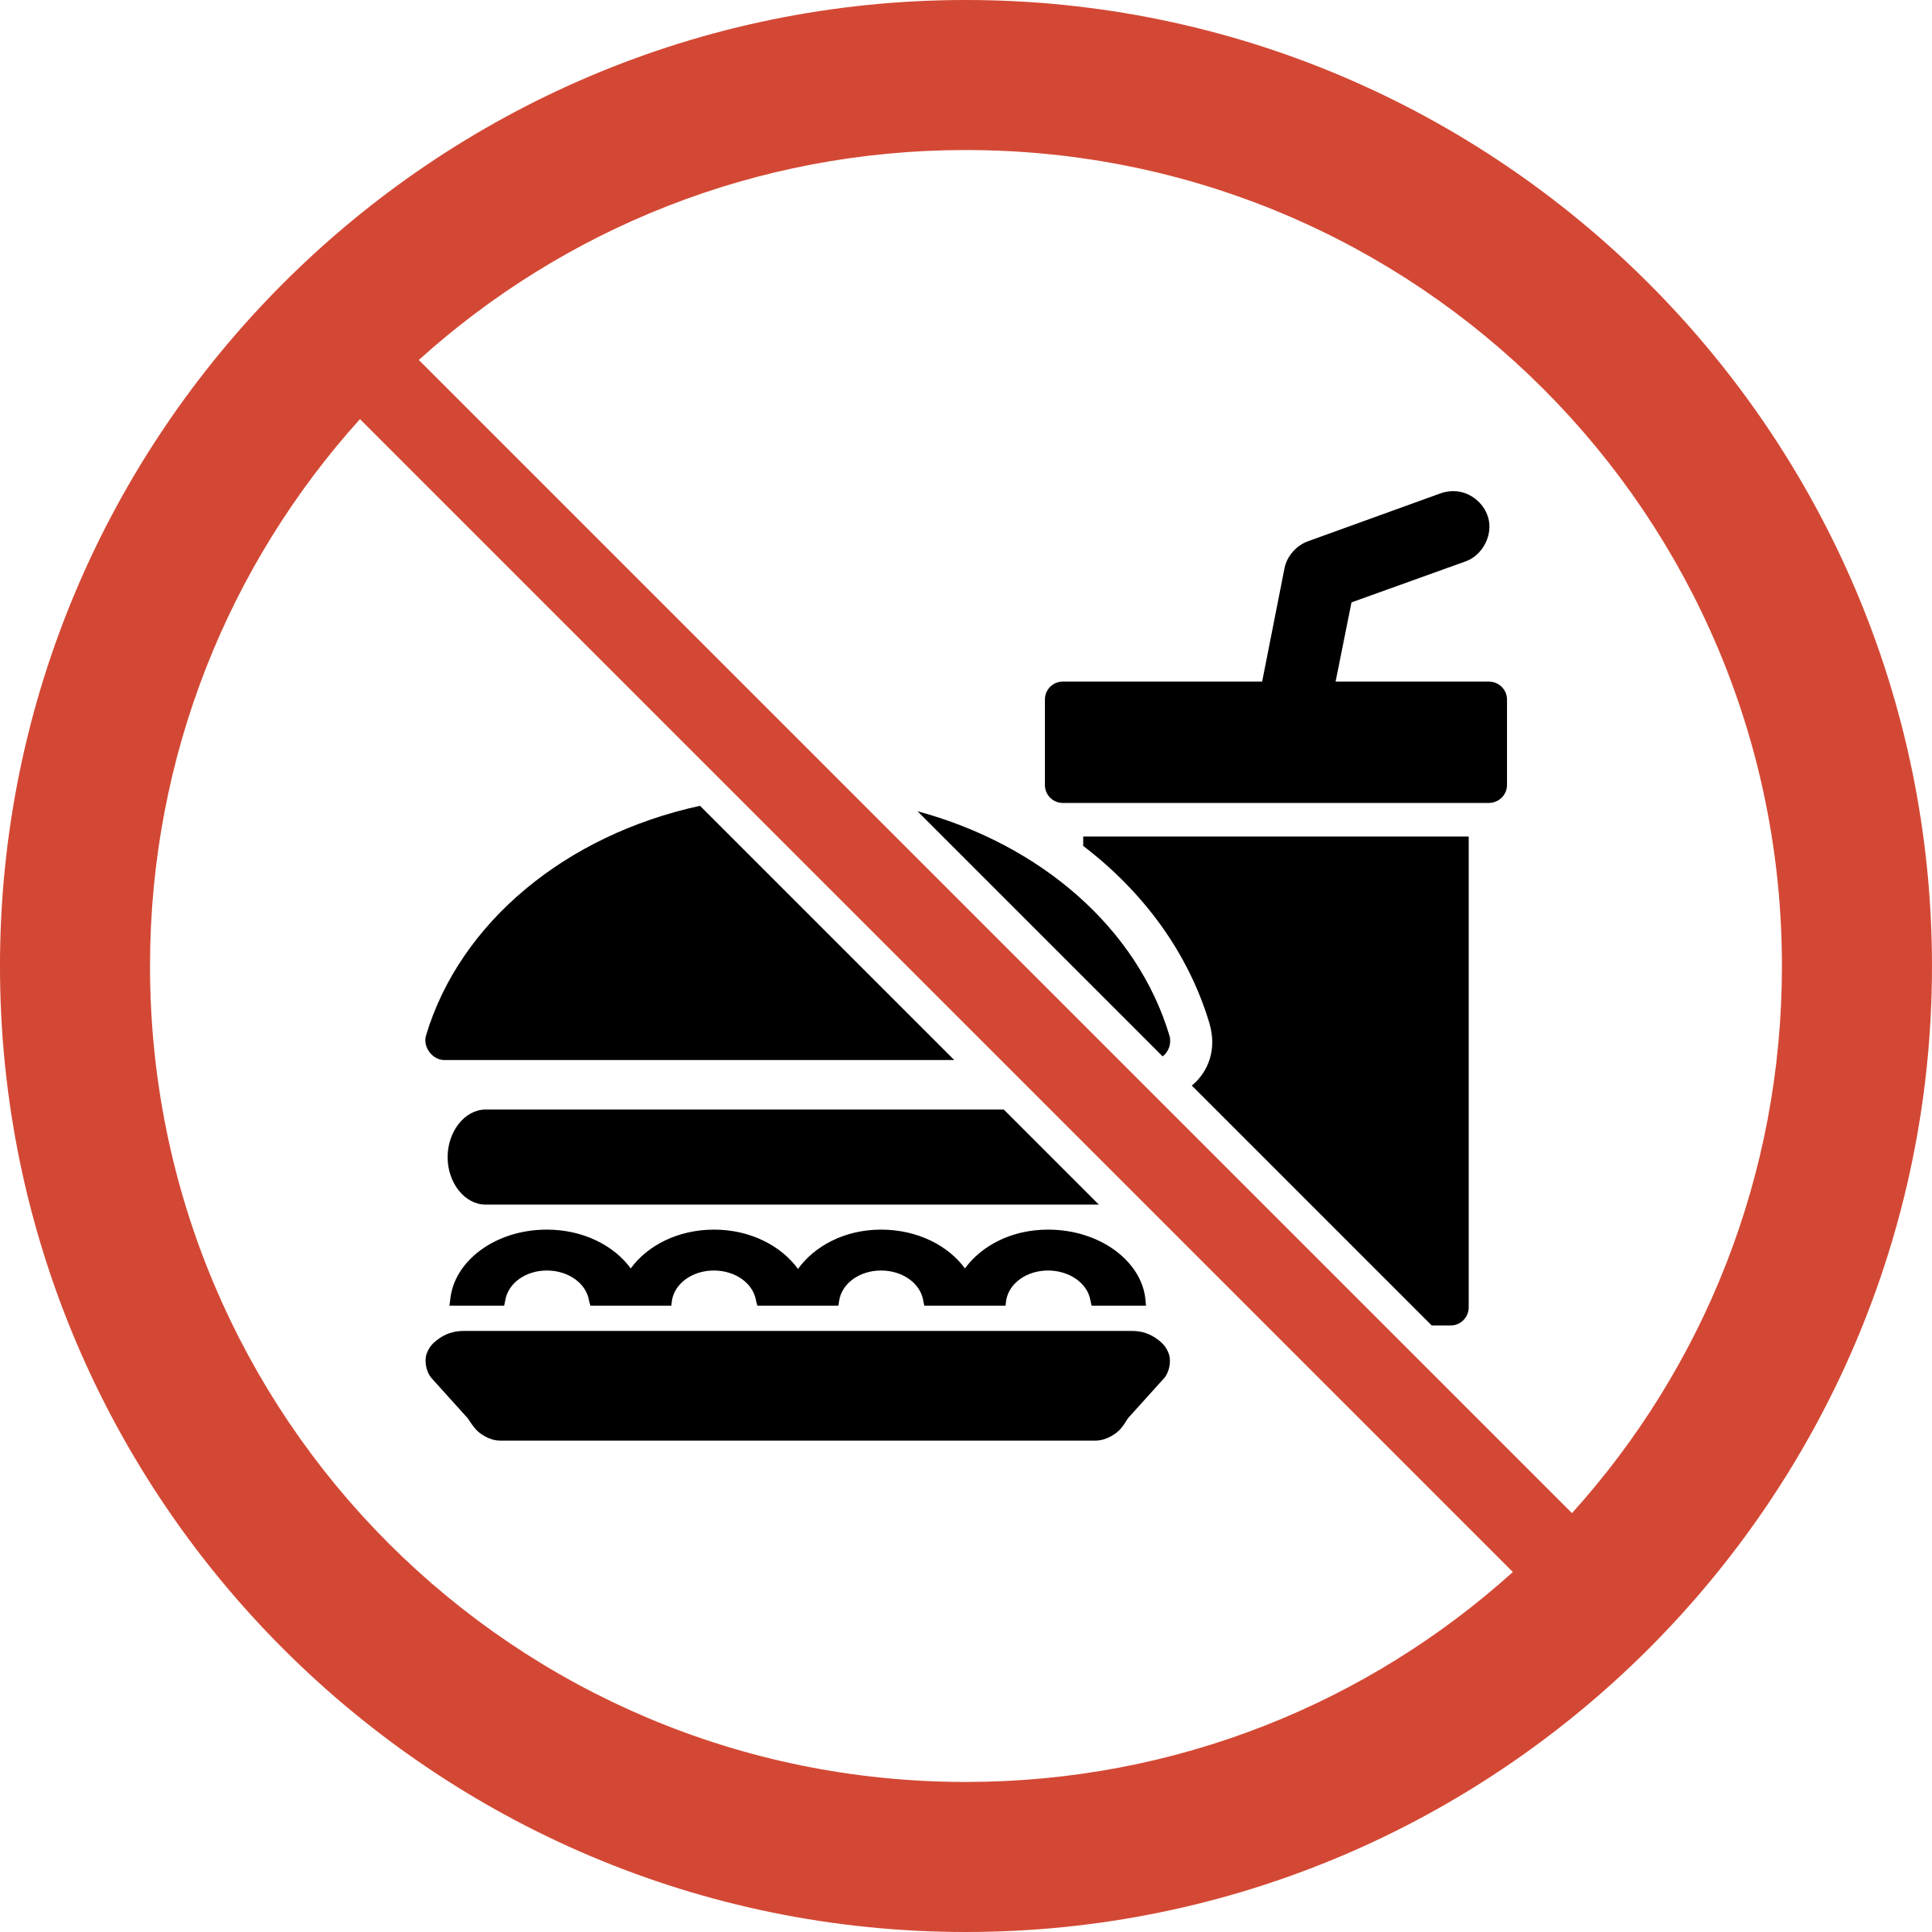 2400x2400 Prohibited Sign Prohibited Food Gallery Clip Art